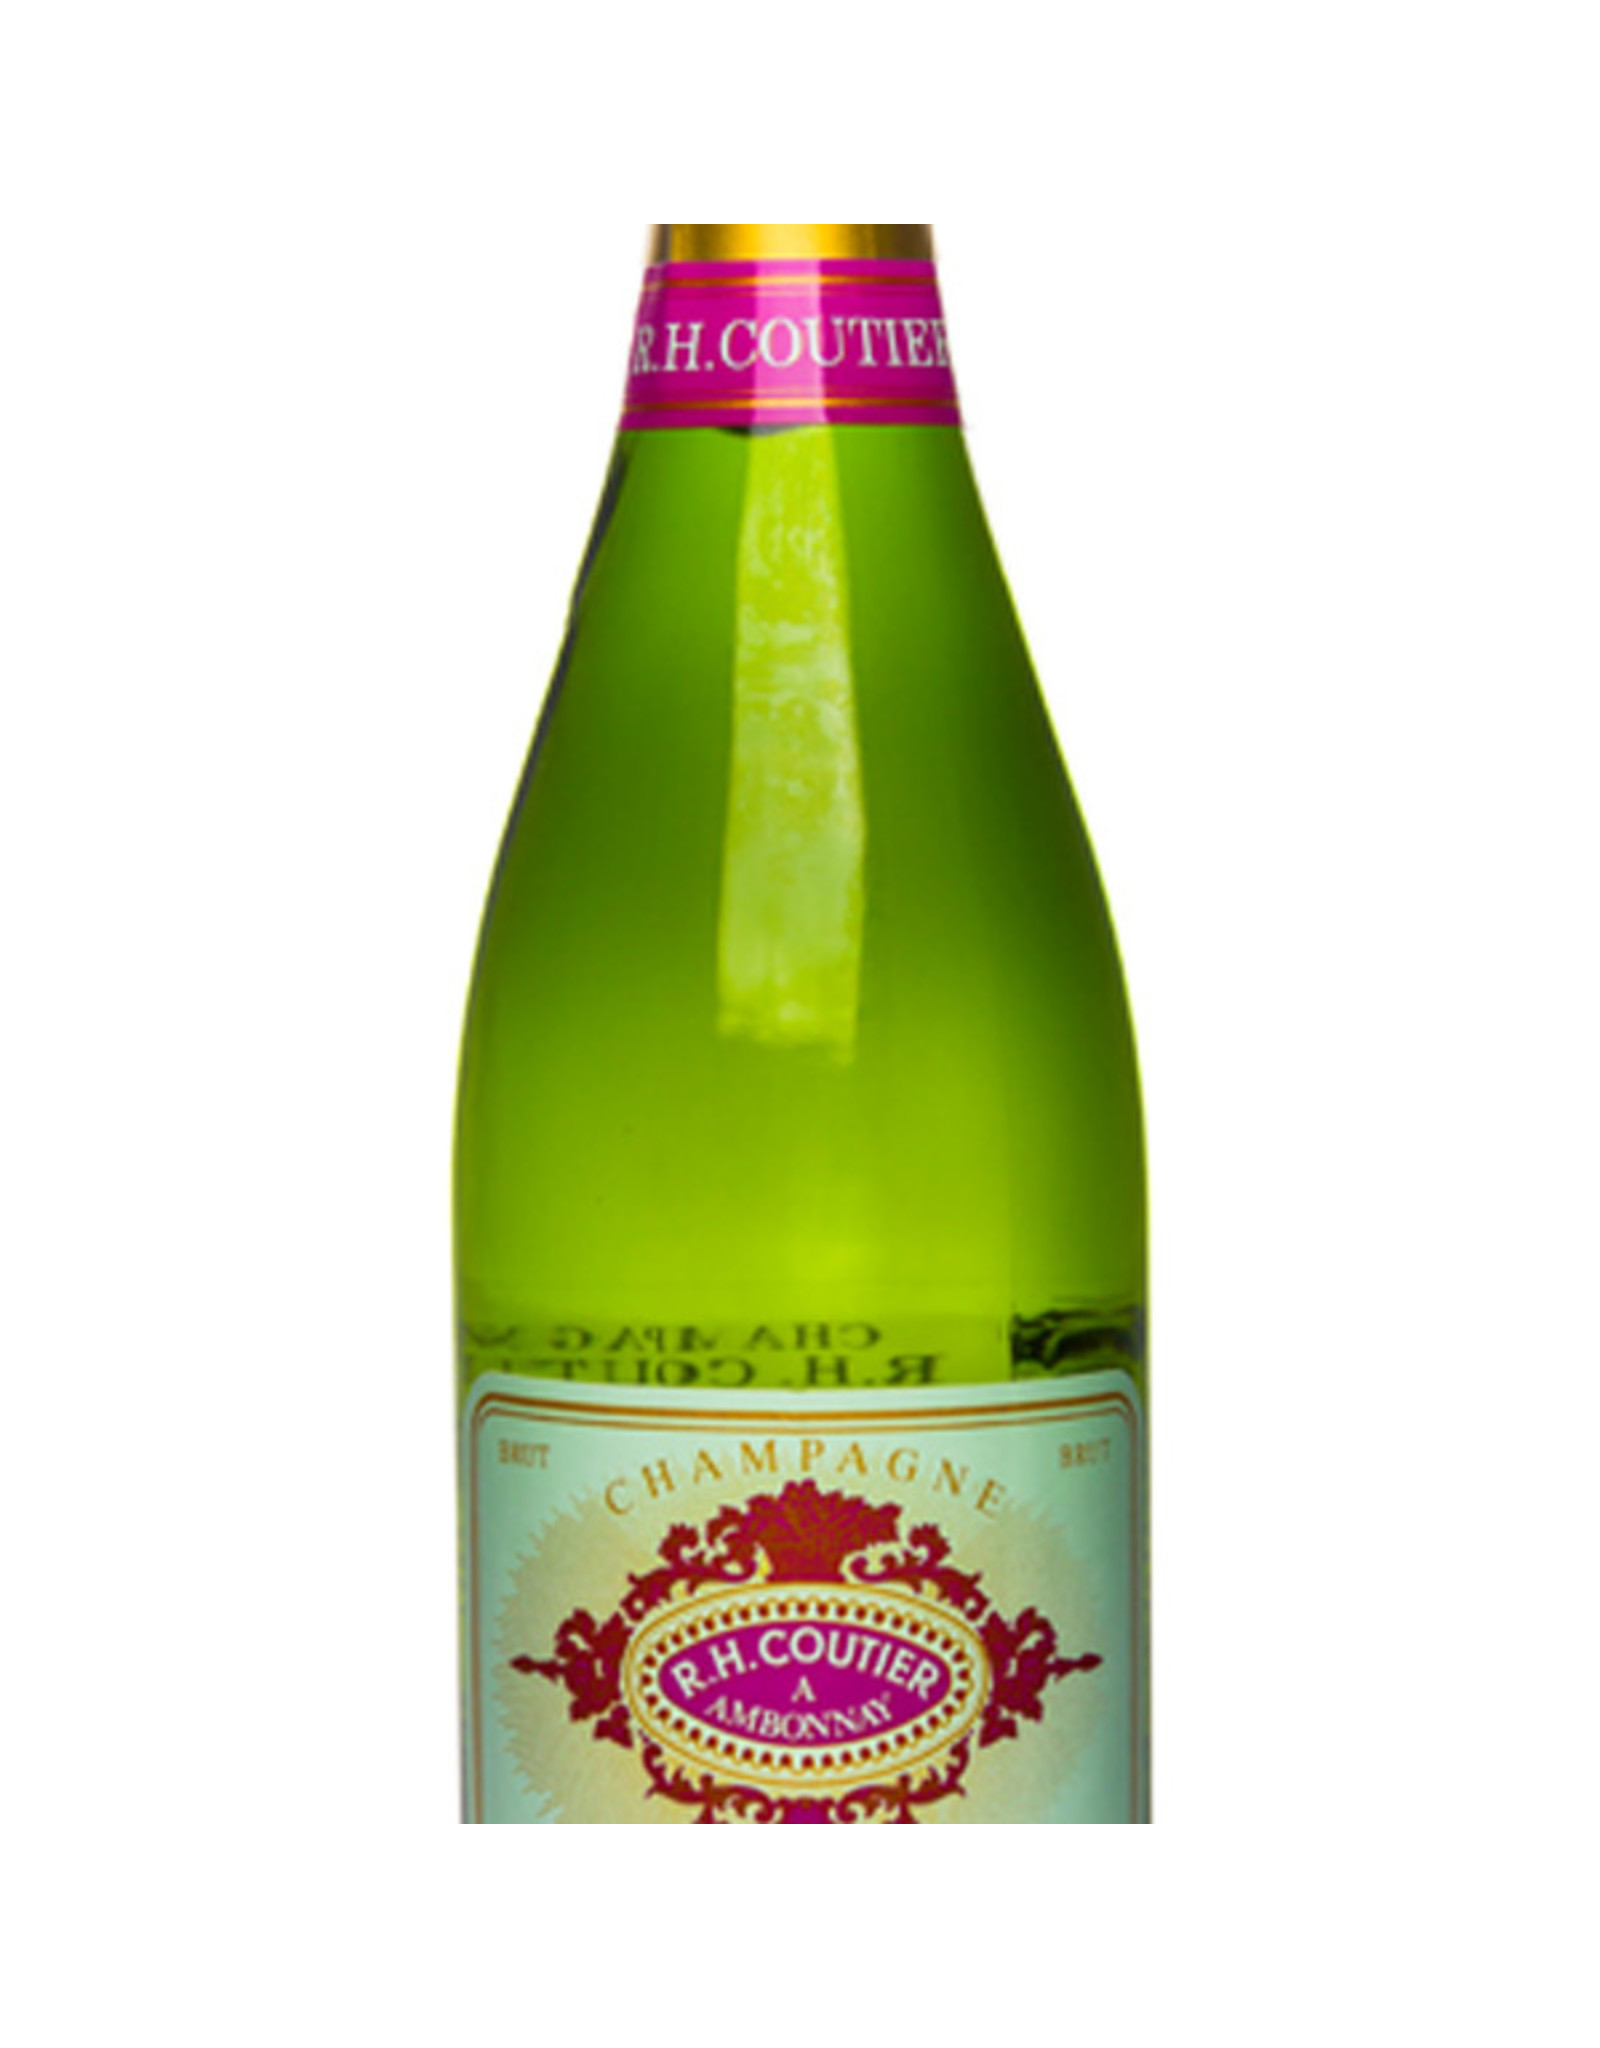 R.H. Coutier, Ambonnay Coutier Champagne Brut Grand Cru Tradition magnum , Ambonnay